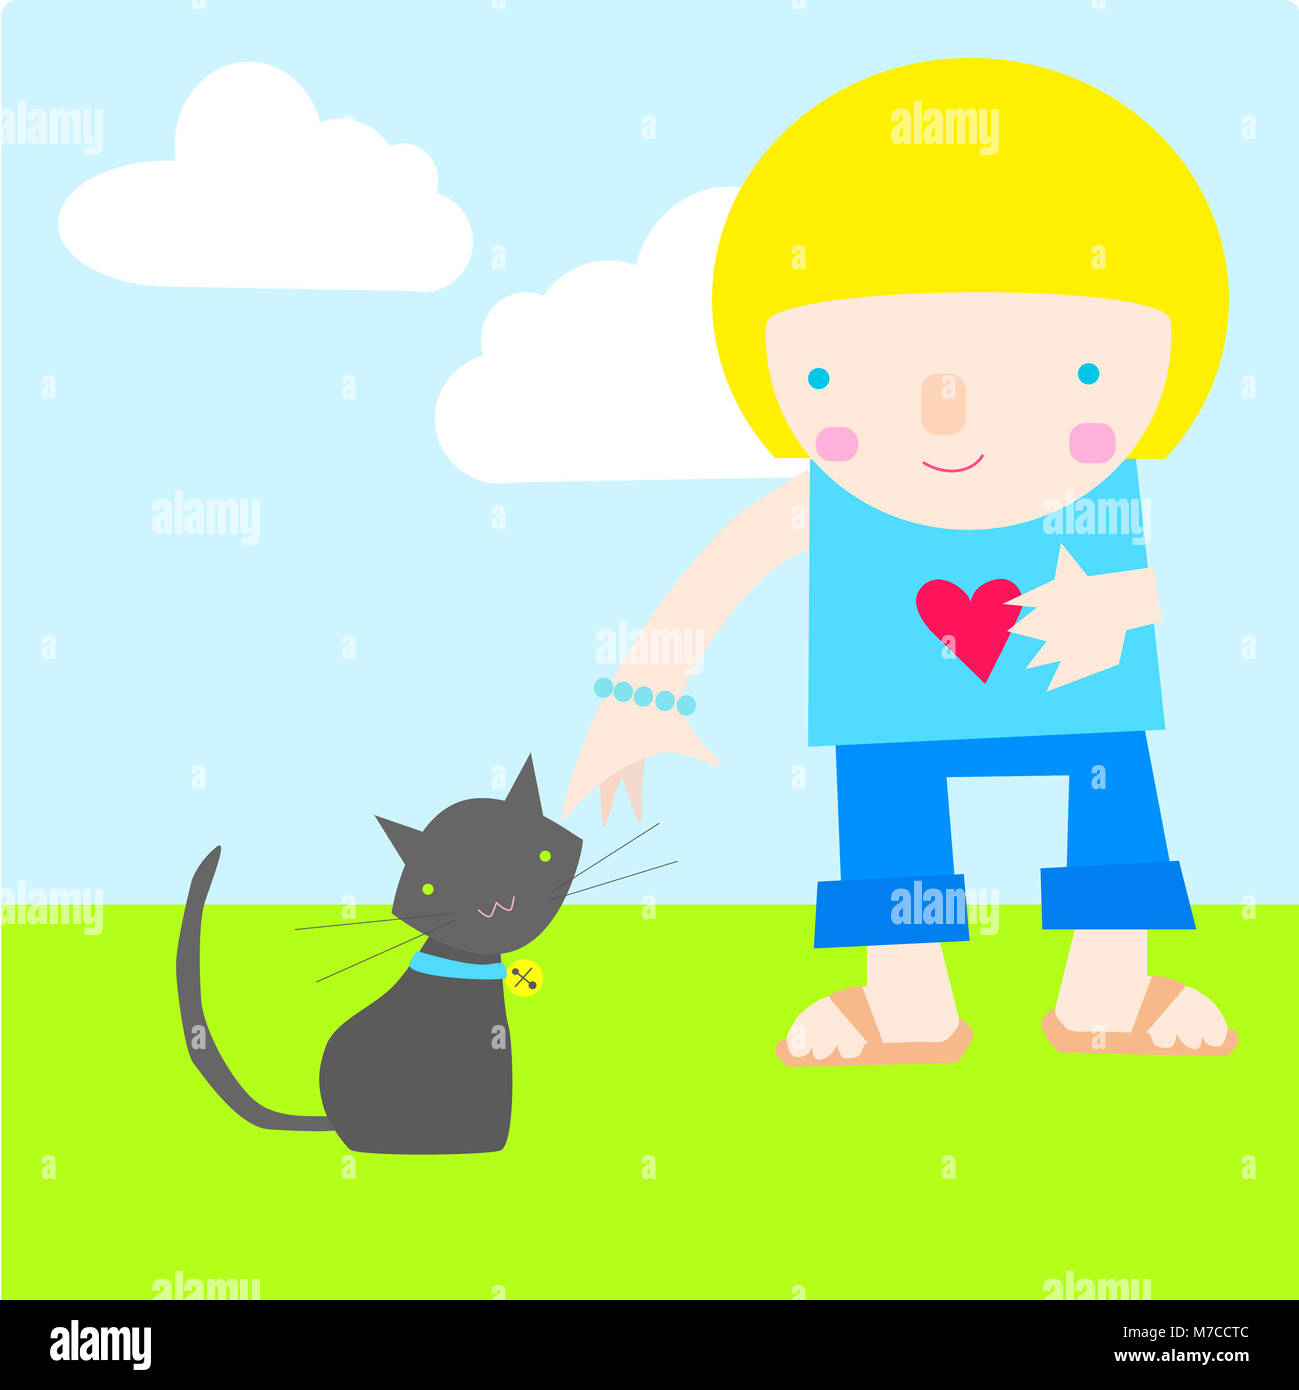 Girl standing besides a cat - Stock Image